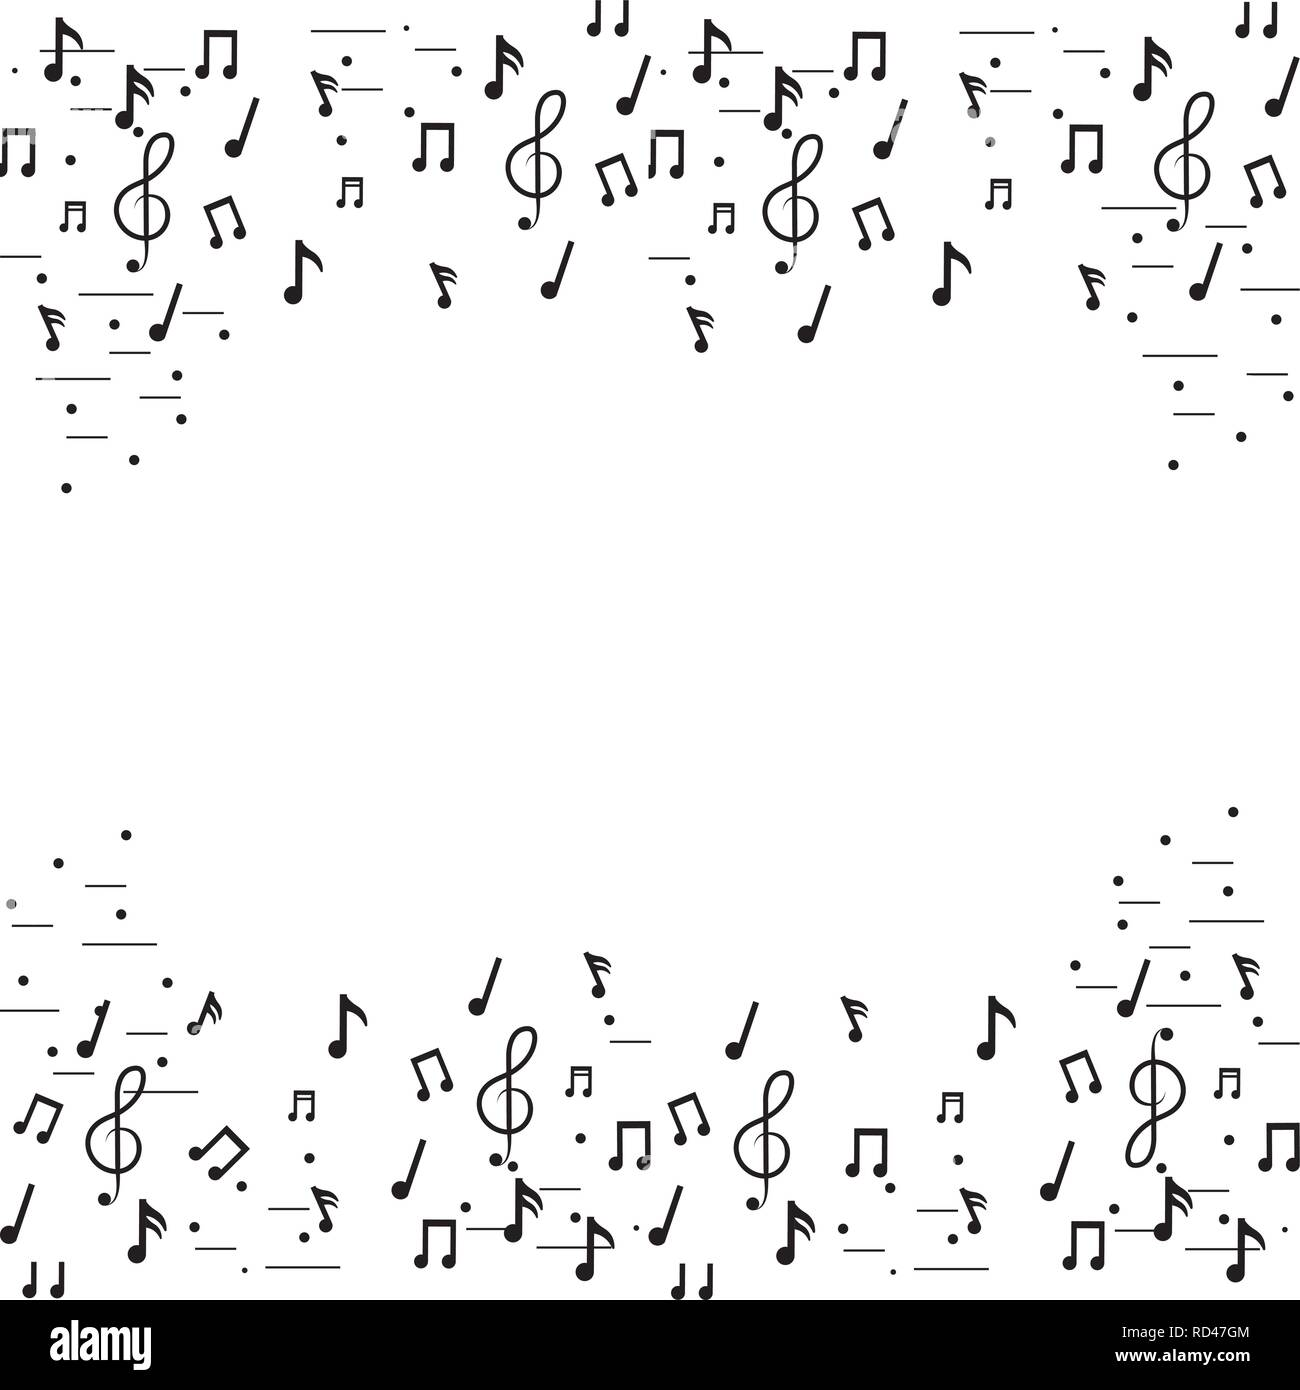 music notes frame - Stock Image